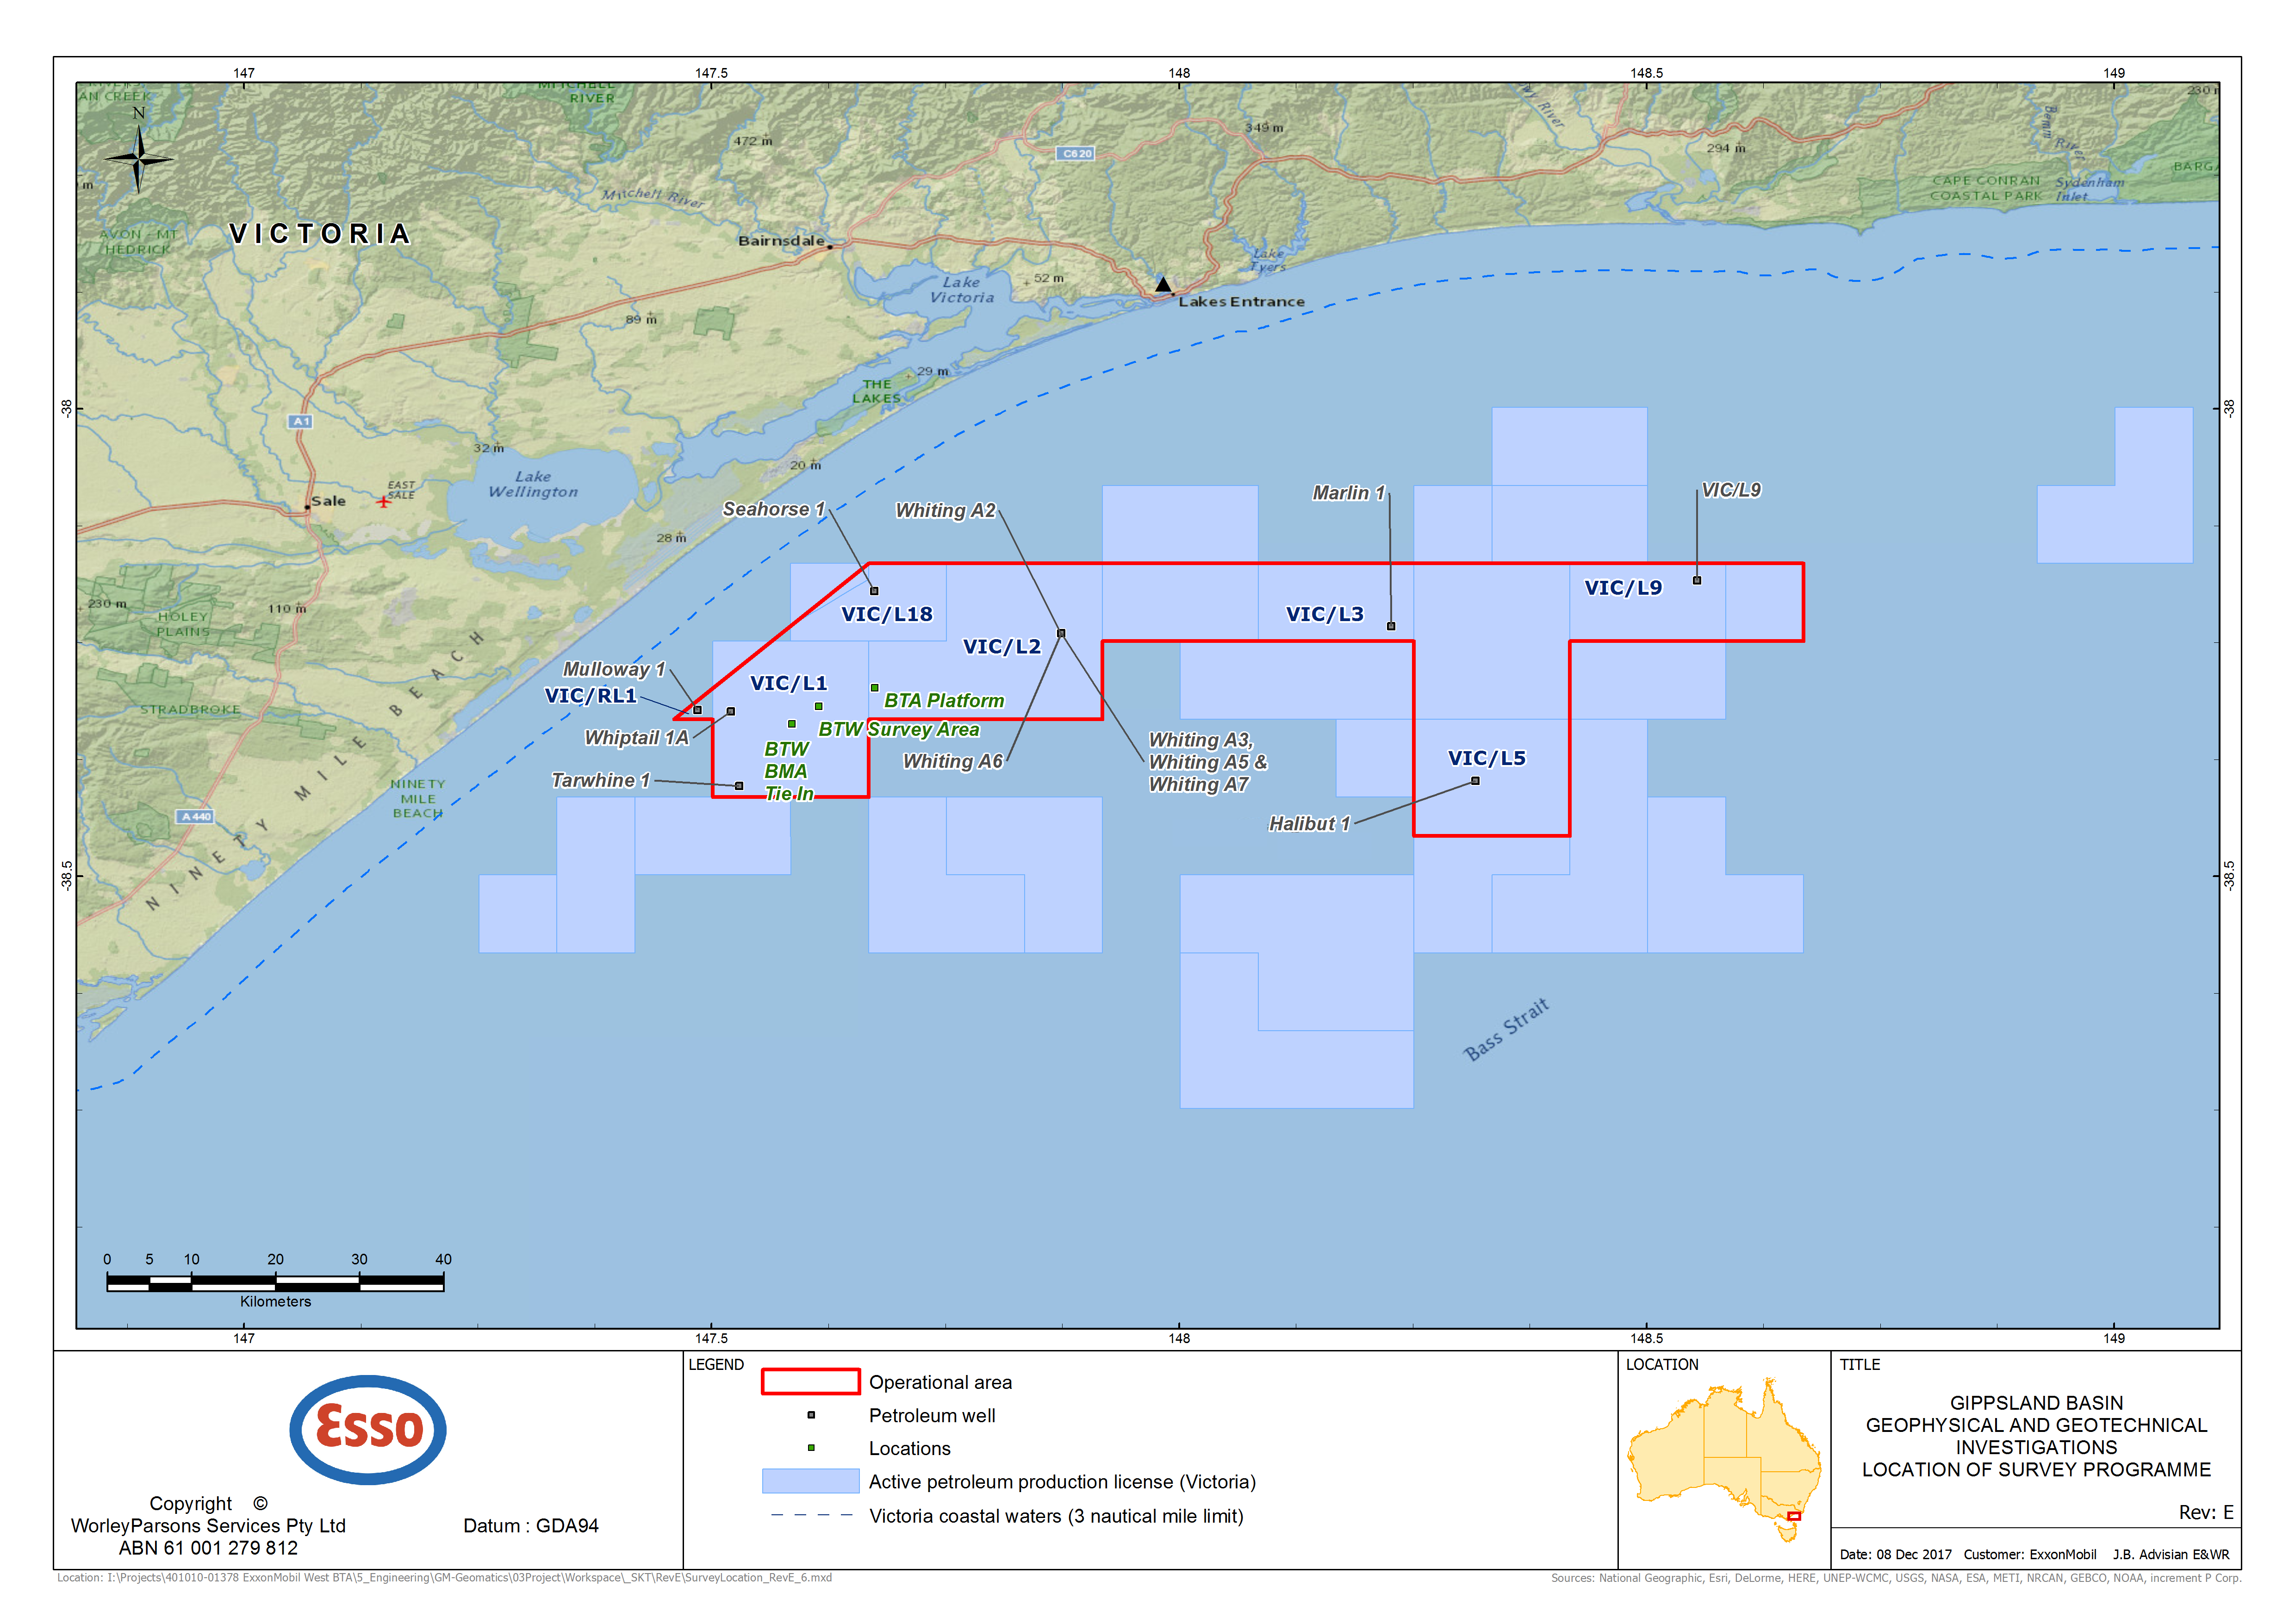 Location map - Activity: Gippsland Basin Geophysical and Geotechnical Investigations (refer to description)